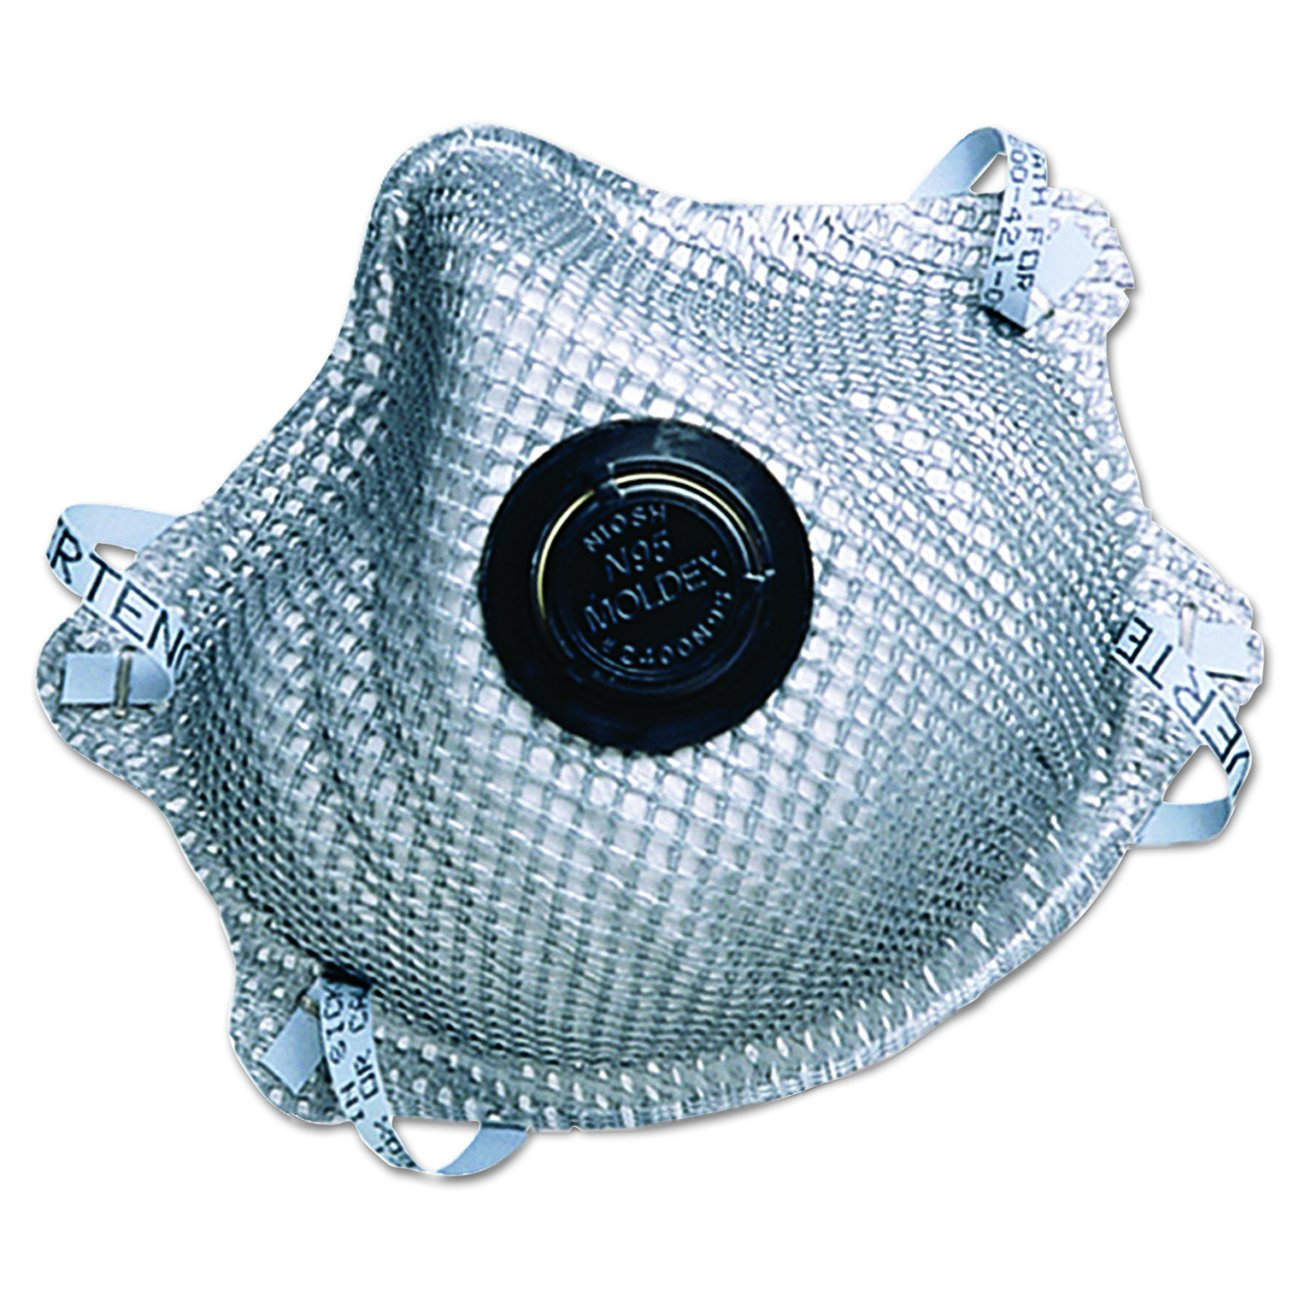 Moldex Large N95 Disposable Particulate Respirator by Moldex-Metric Inc.